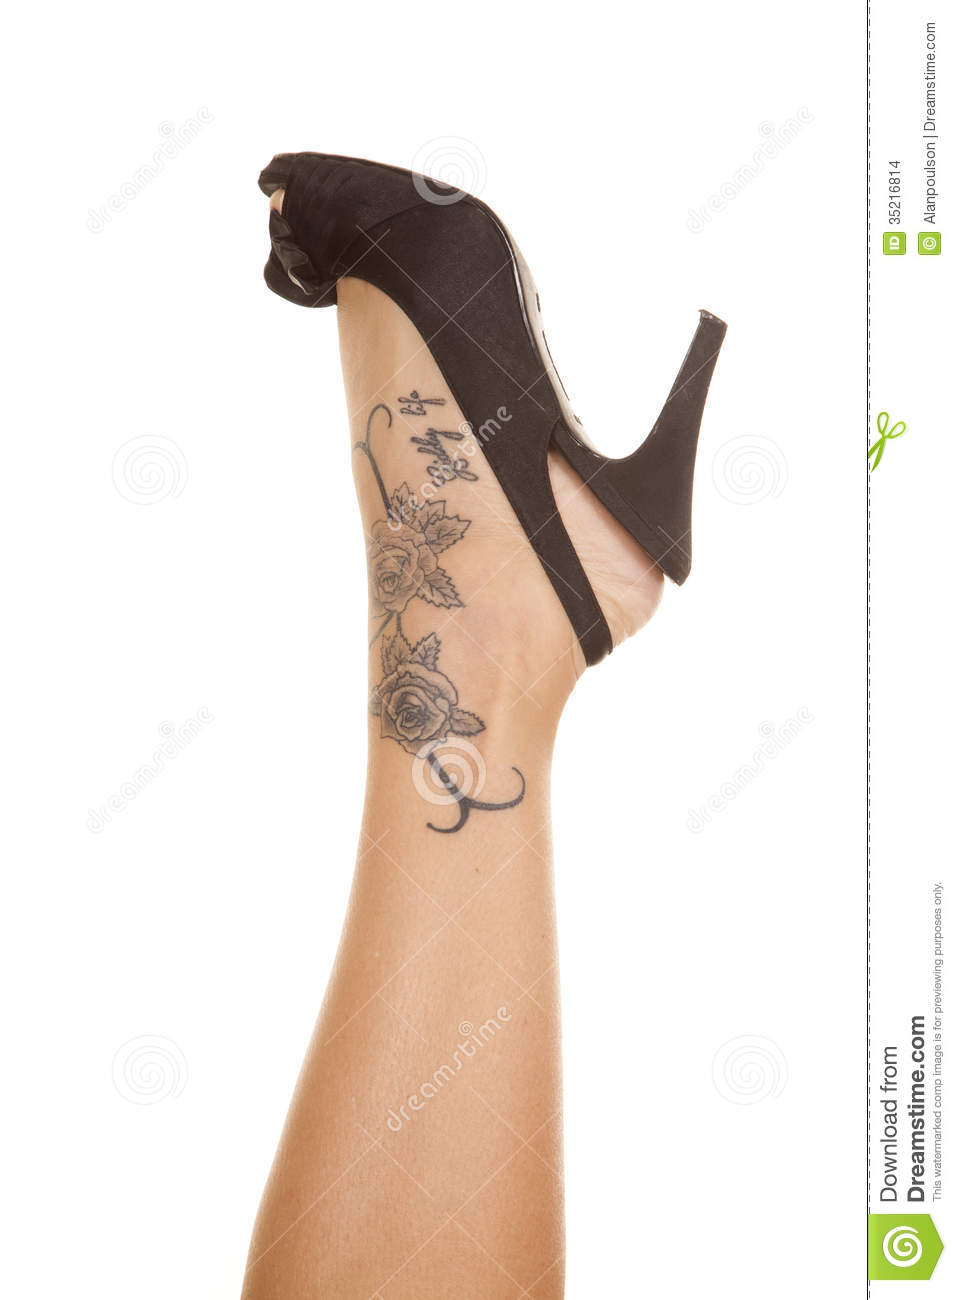 Woman leg tattoo on foot stock photo. Image of flower